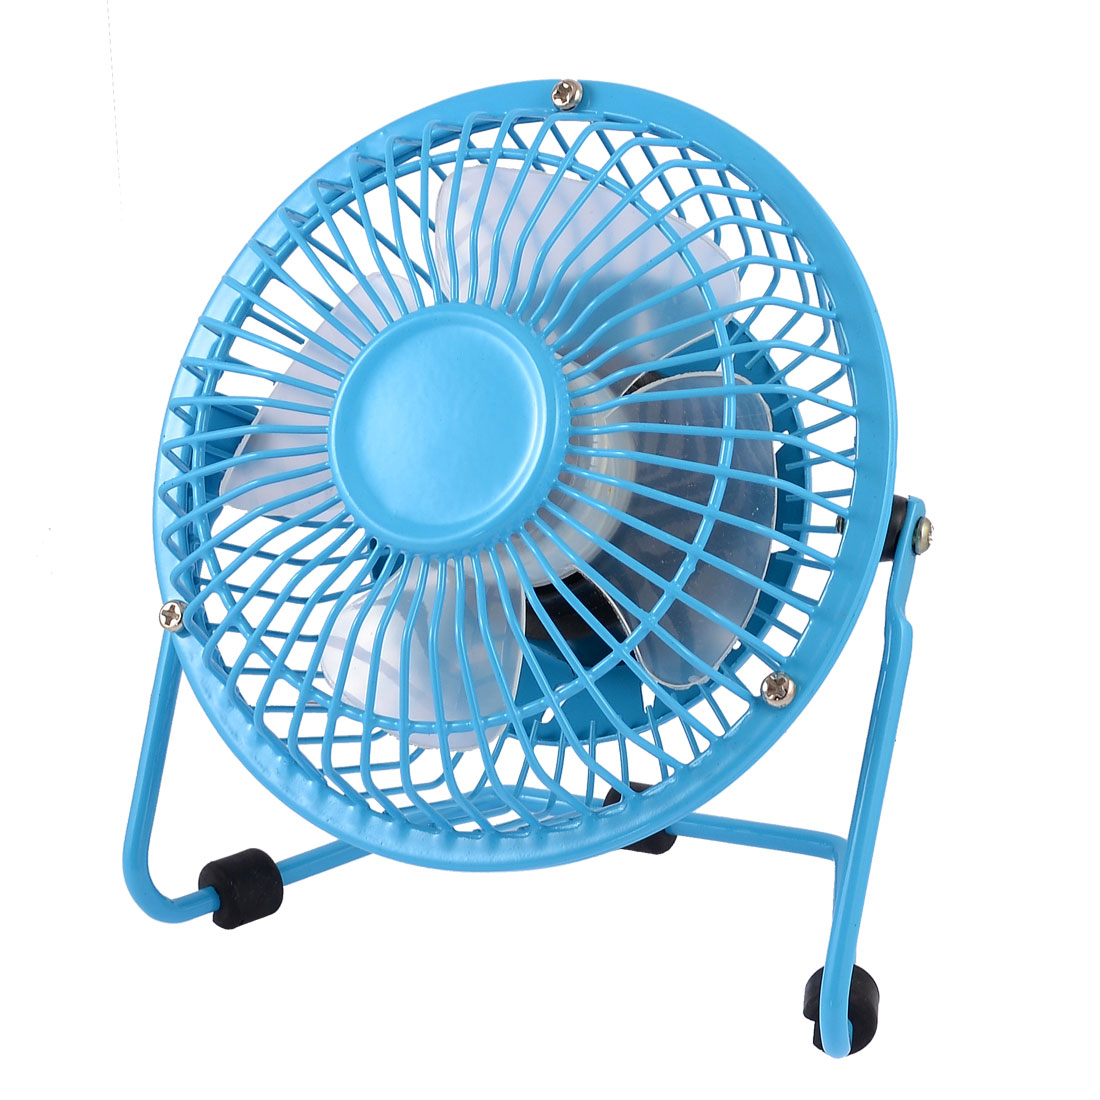 "Home Office Cooling Cool Metal Shell Desk USB Mini Fan 4"" Sky Blue"